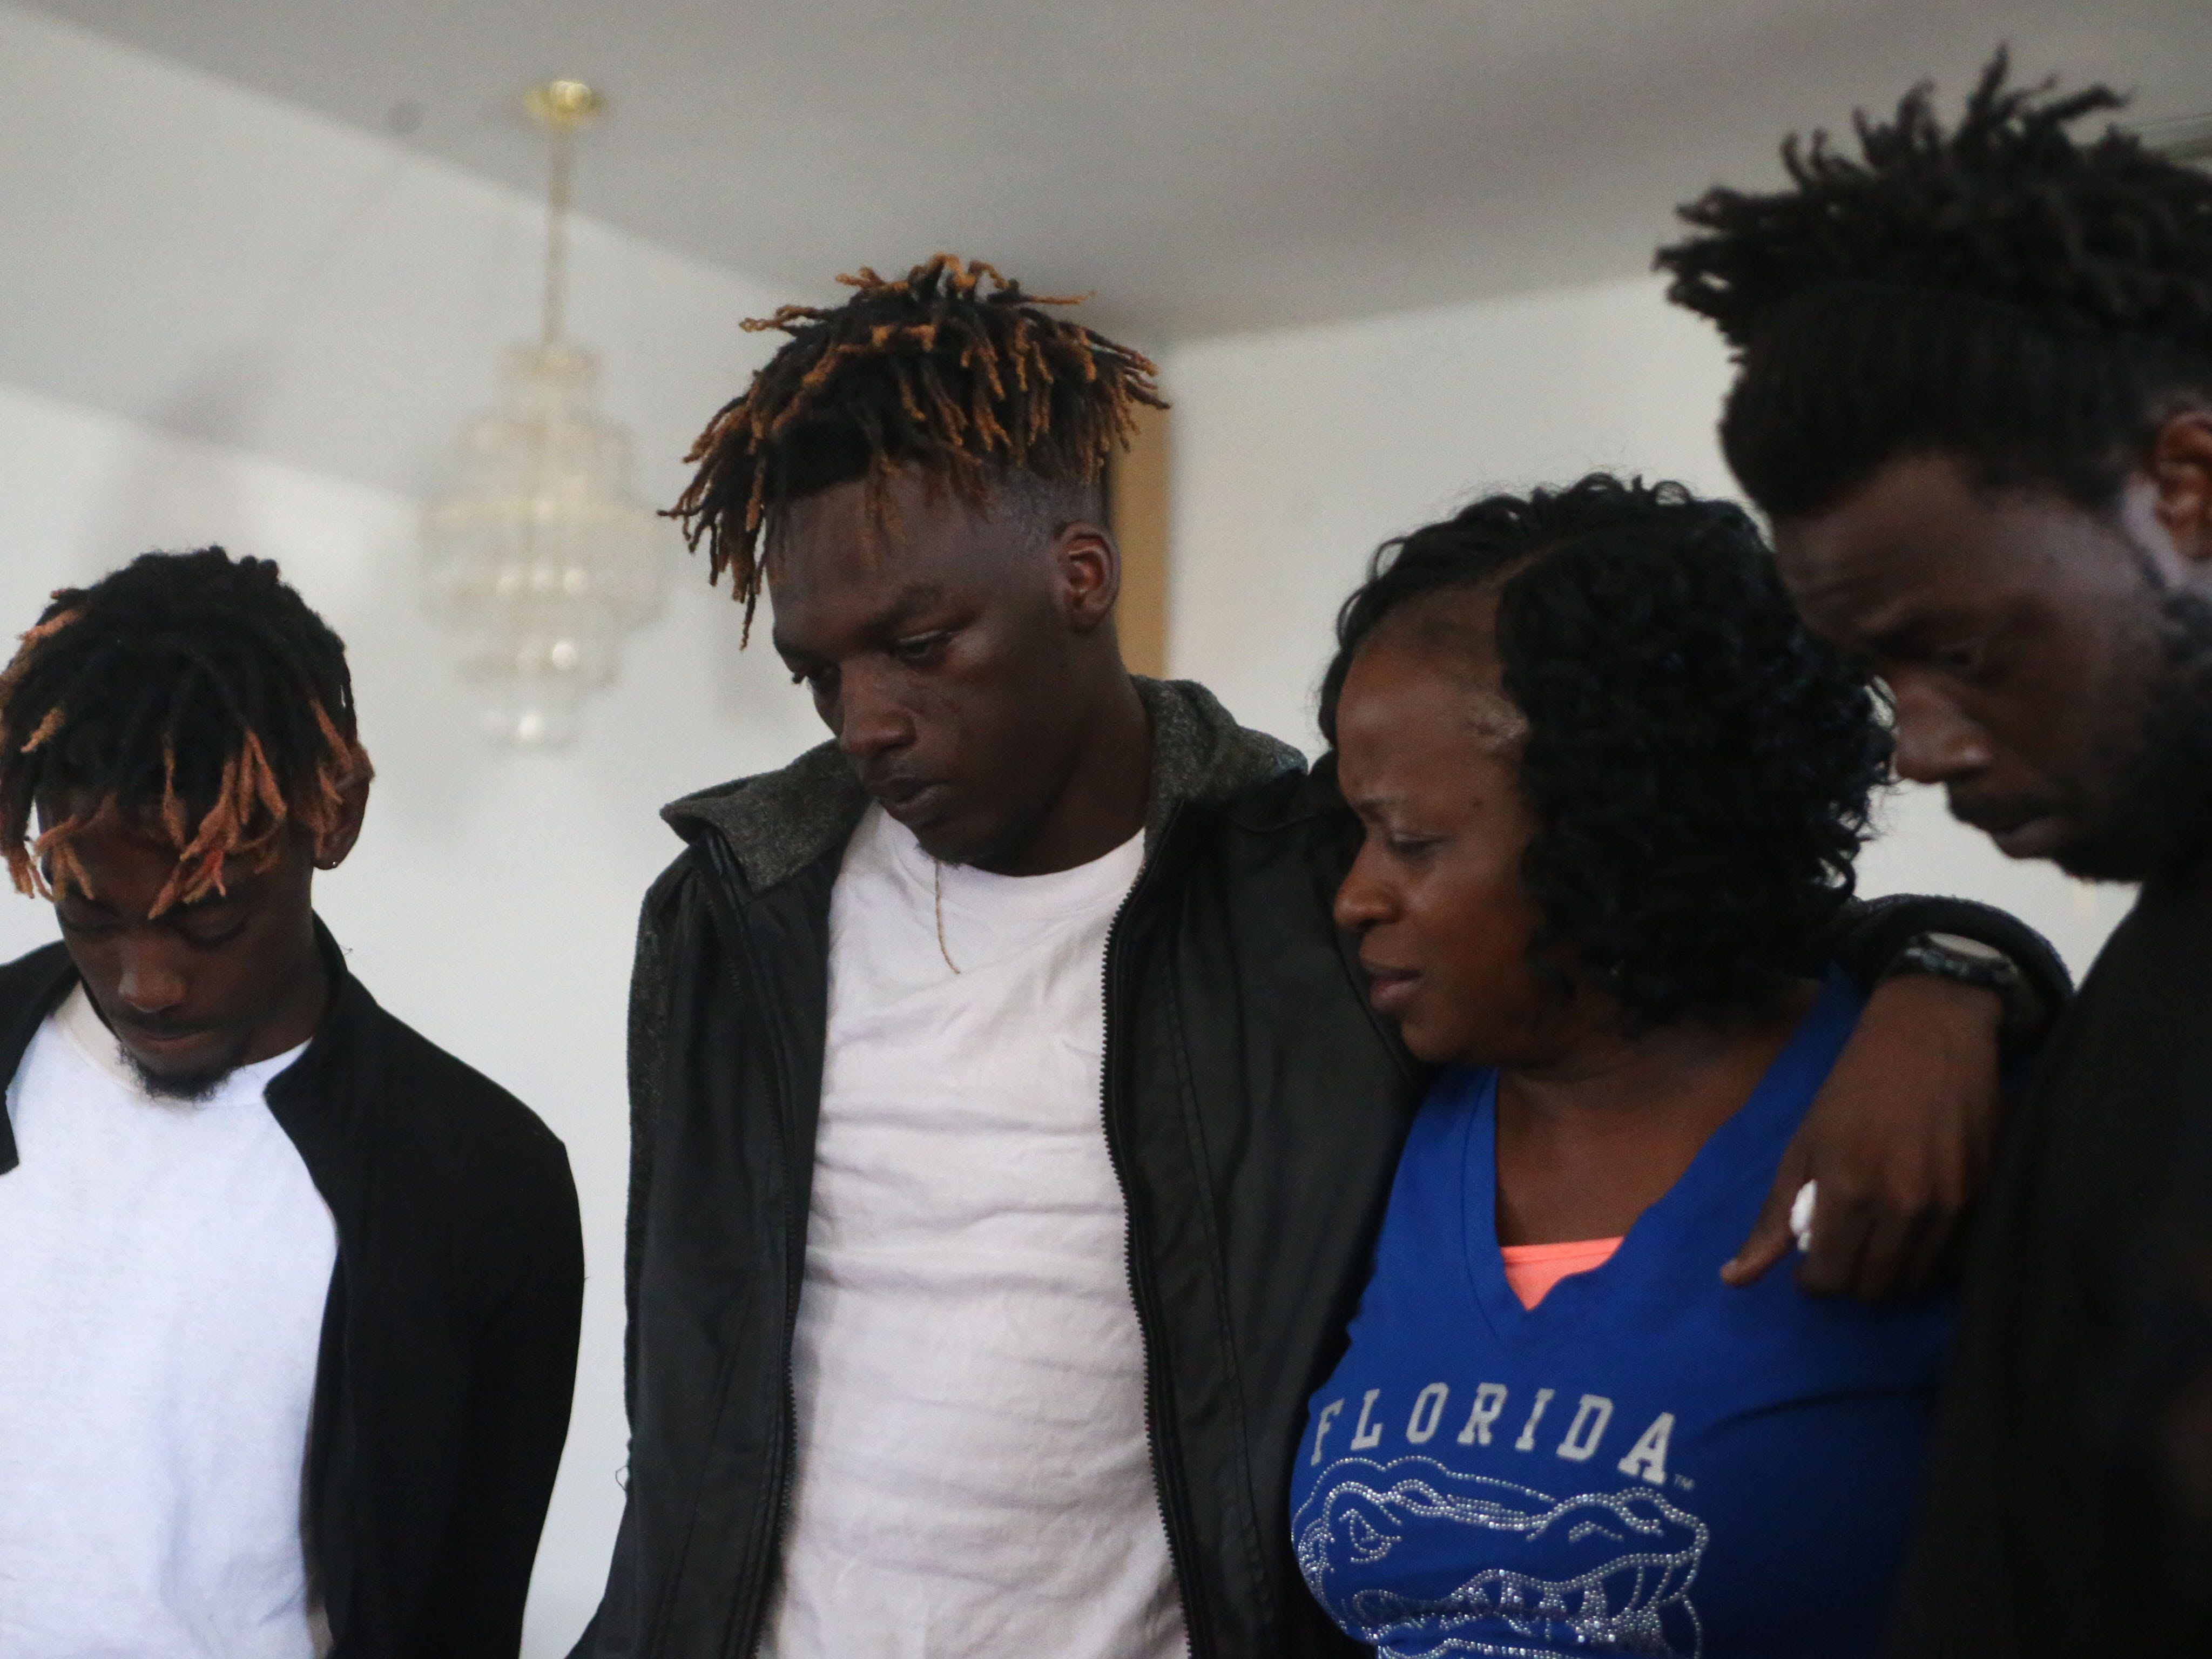 Family of Demashell Bass, a woman who could not receive medical attention and died during the hurricane from left to right, Tyran Grant, 21, son, Tyrone Grant, 23, son, Isabella Dubose, 54, aunt, and Lawrence Williams, 33, brother fight back tears at the Dream, Vision, and Destiny (DVD) Ministry in Gretna, Fla., on Sunday Oct. 14, 2018, after Hurricane Michael hits the Florida panhandle.